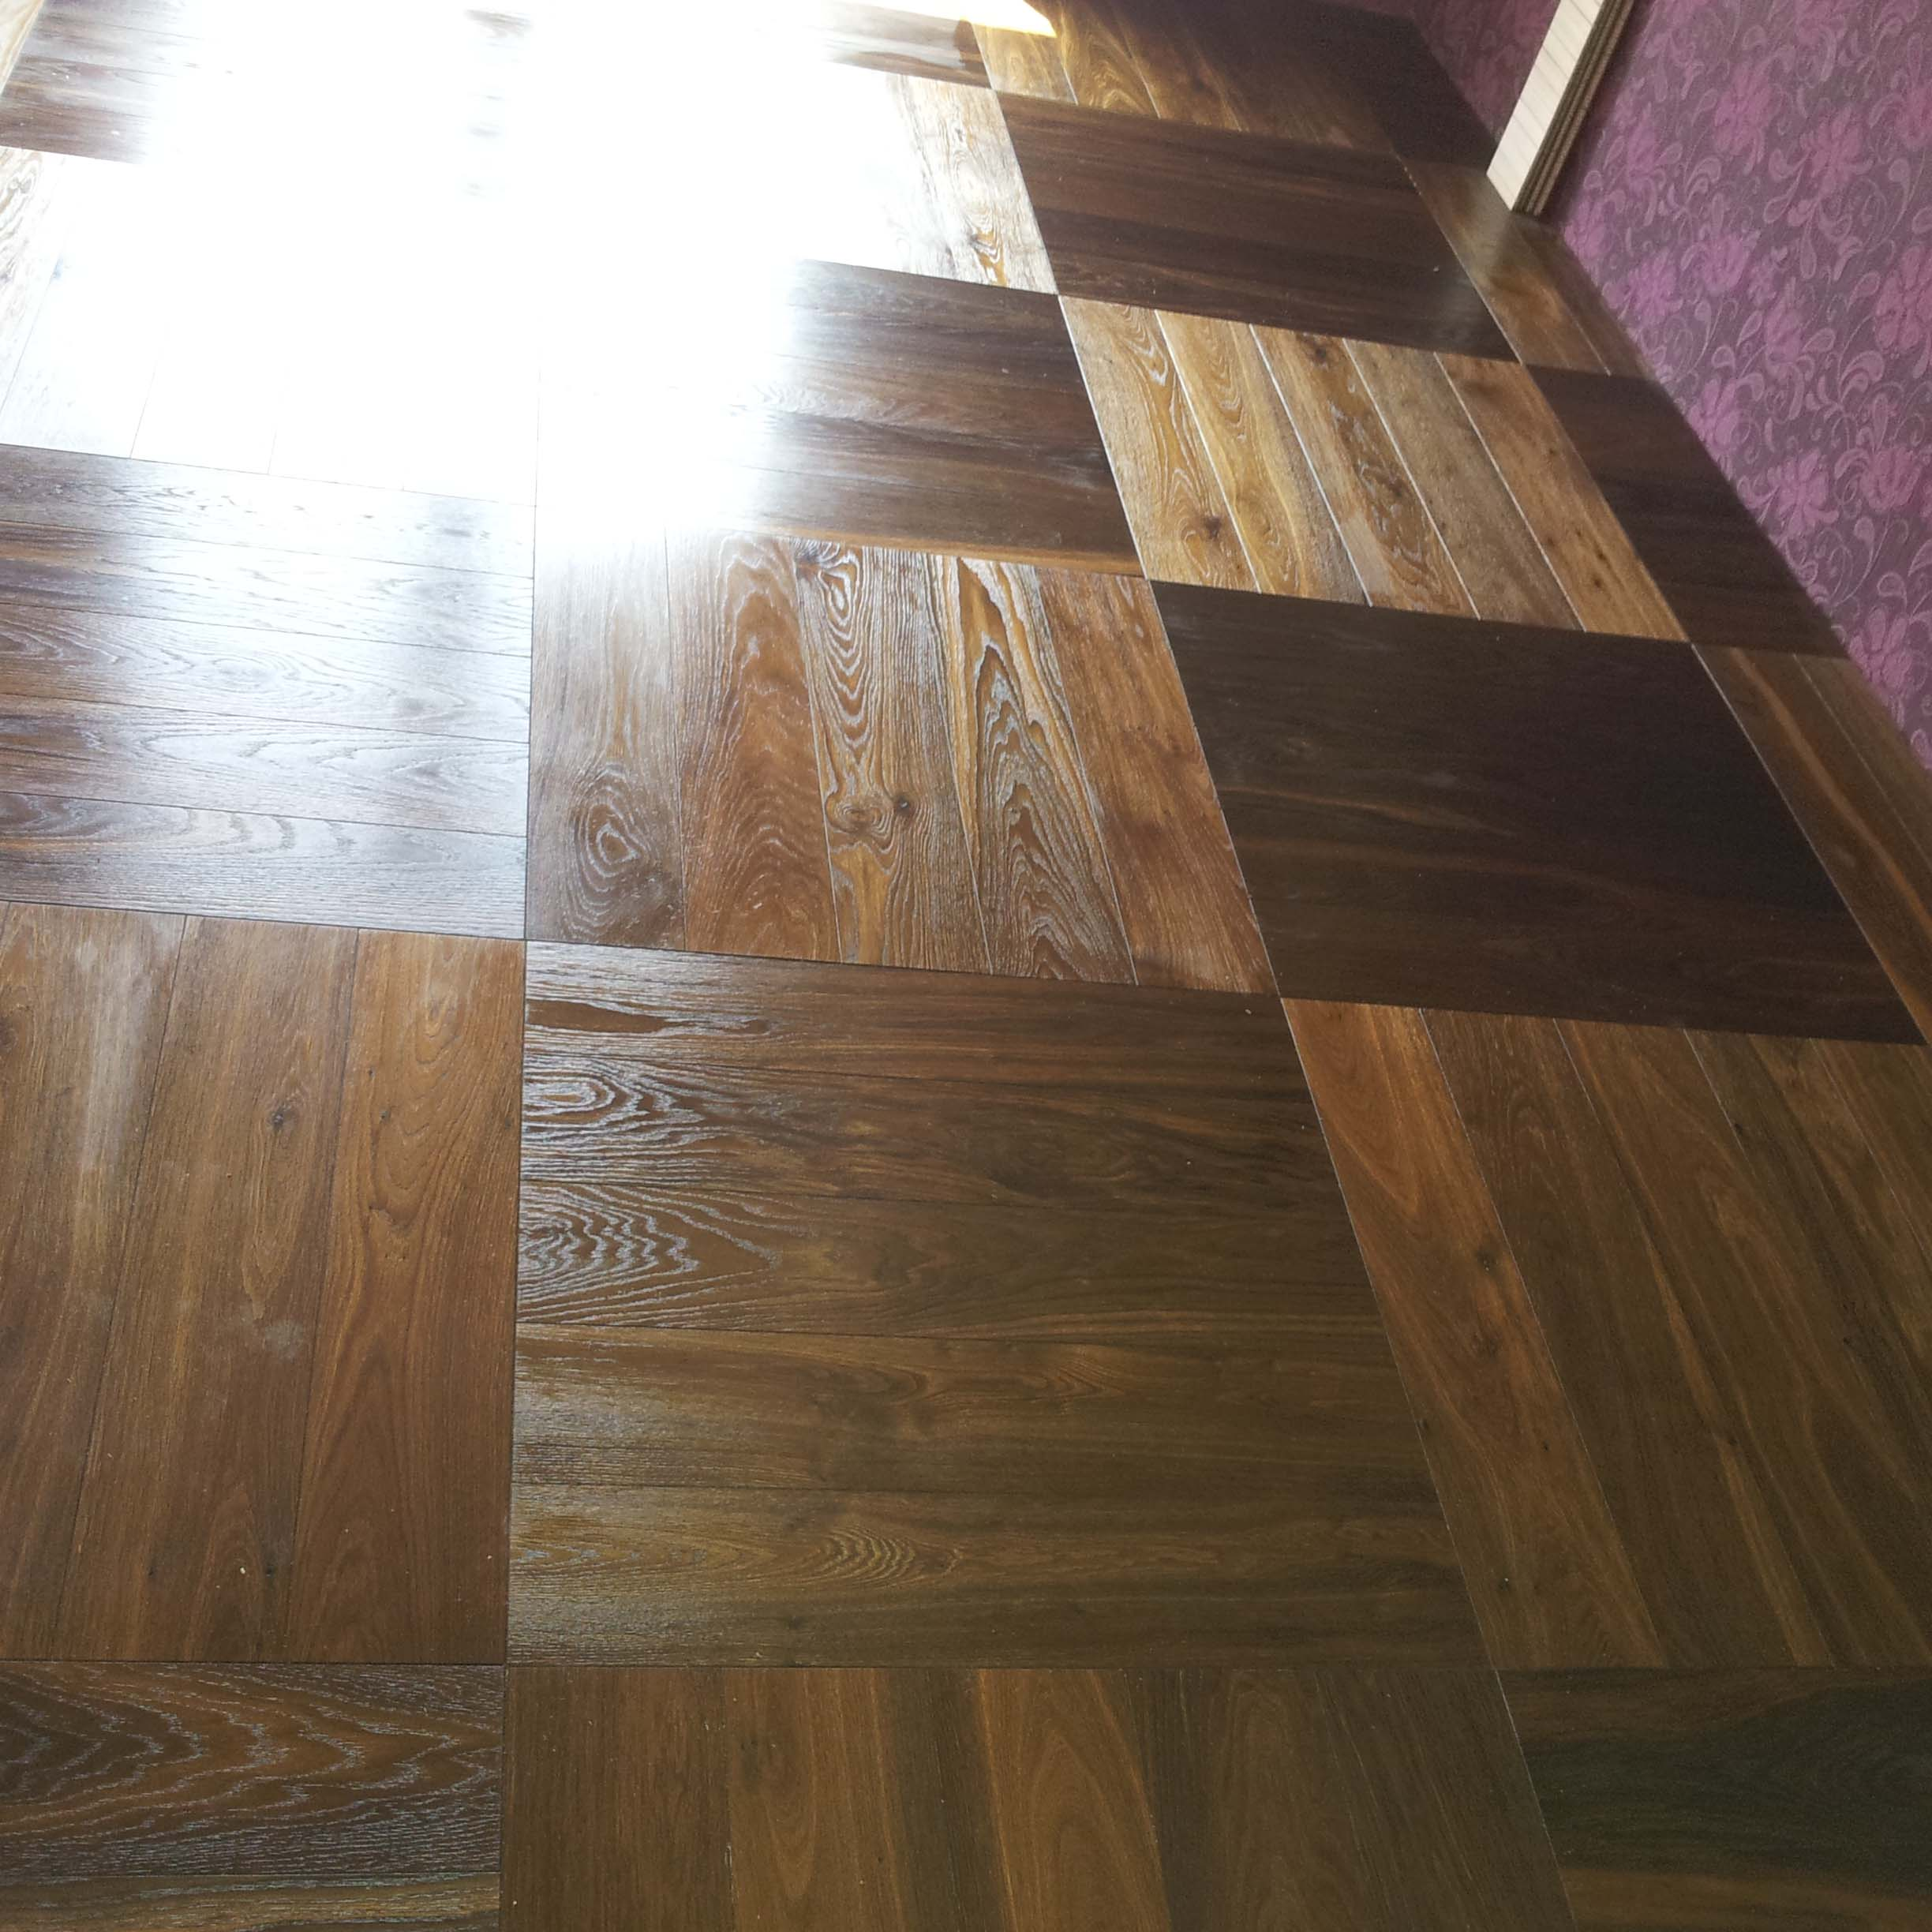 1.Oak Smoked Basket Weave parquet